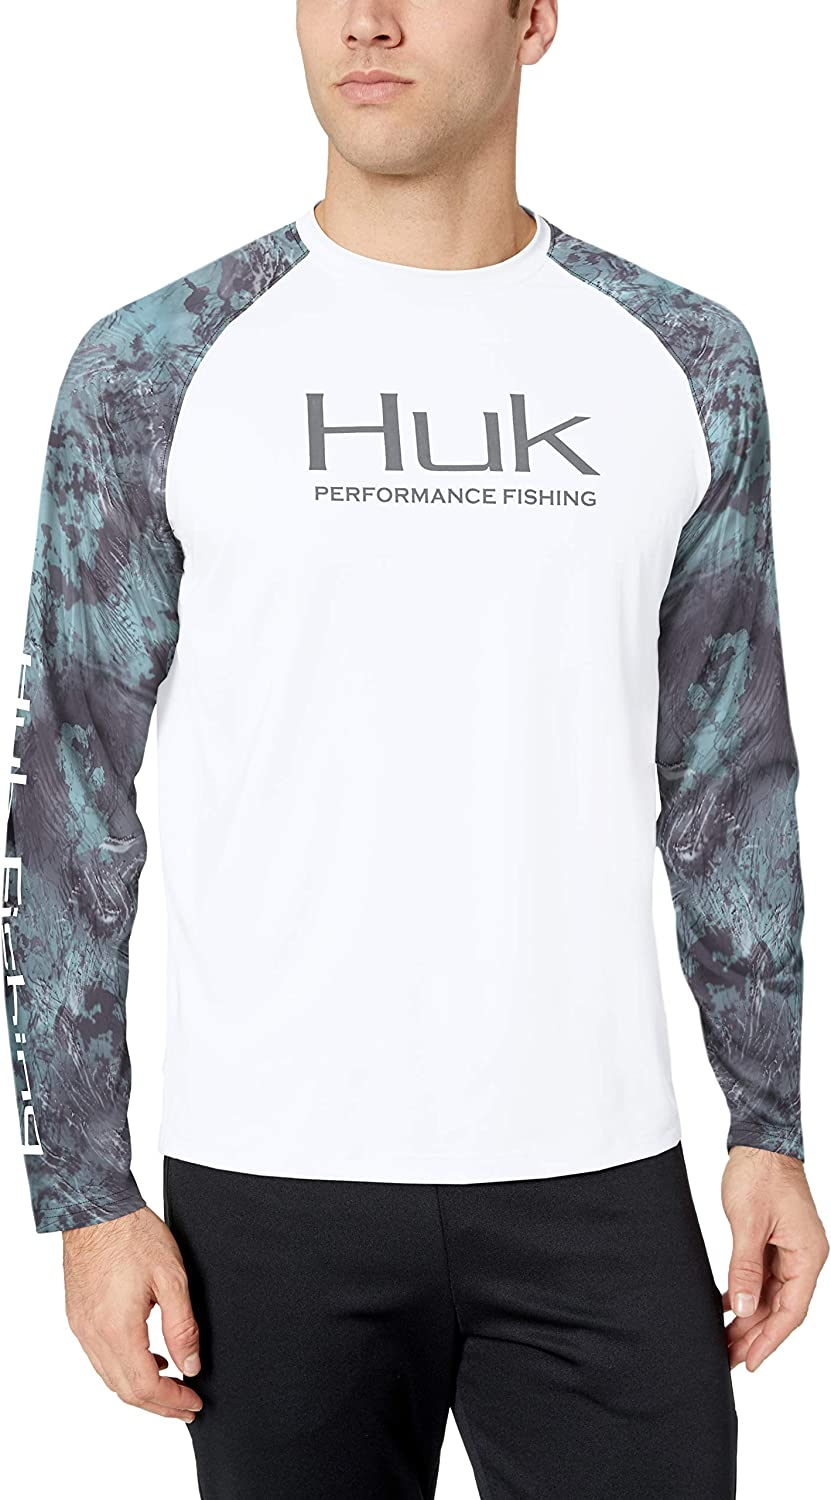 Huk Men's Double Header Vented Long Sleeve Shirt | Premium Fishing Shirt with +30 UPF Sun Protection, White/SubPhantis Glacier, Medium